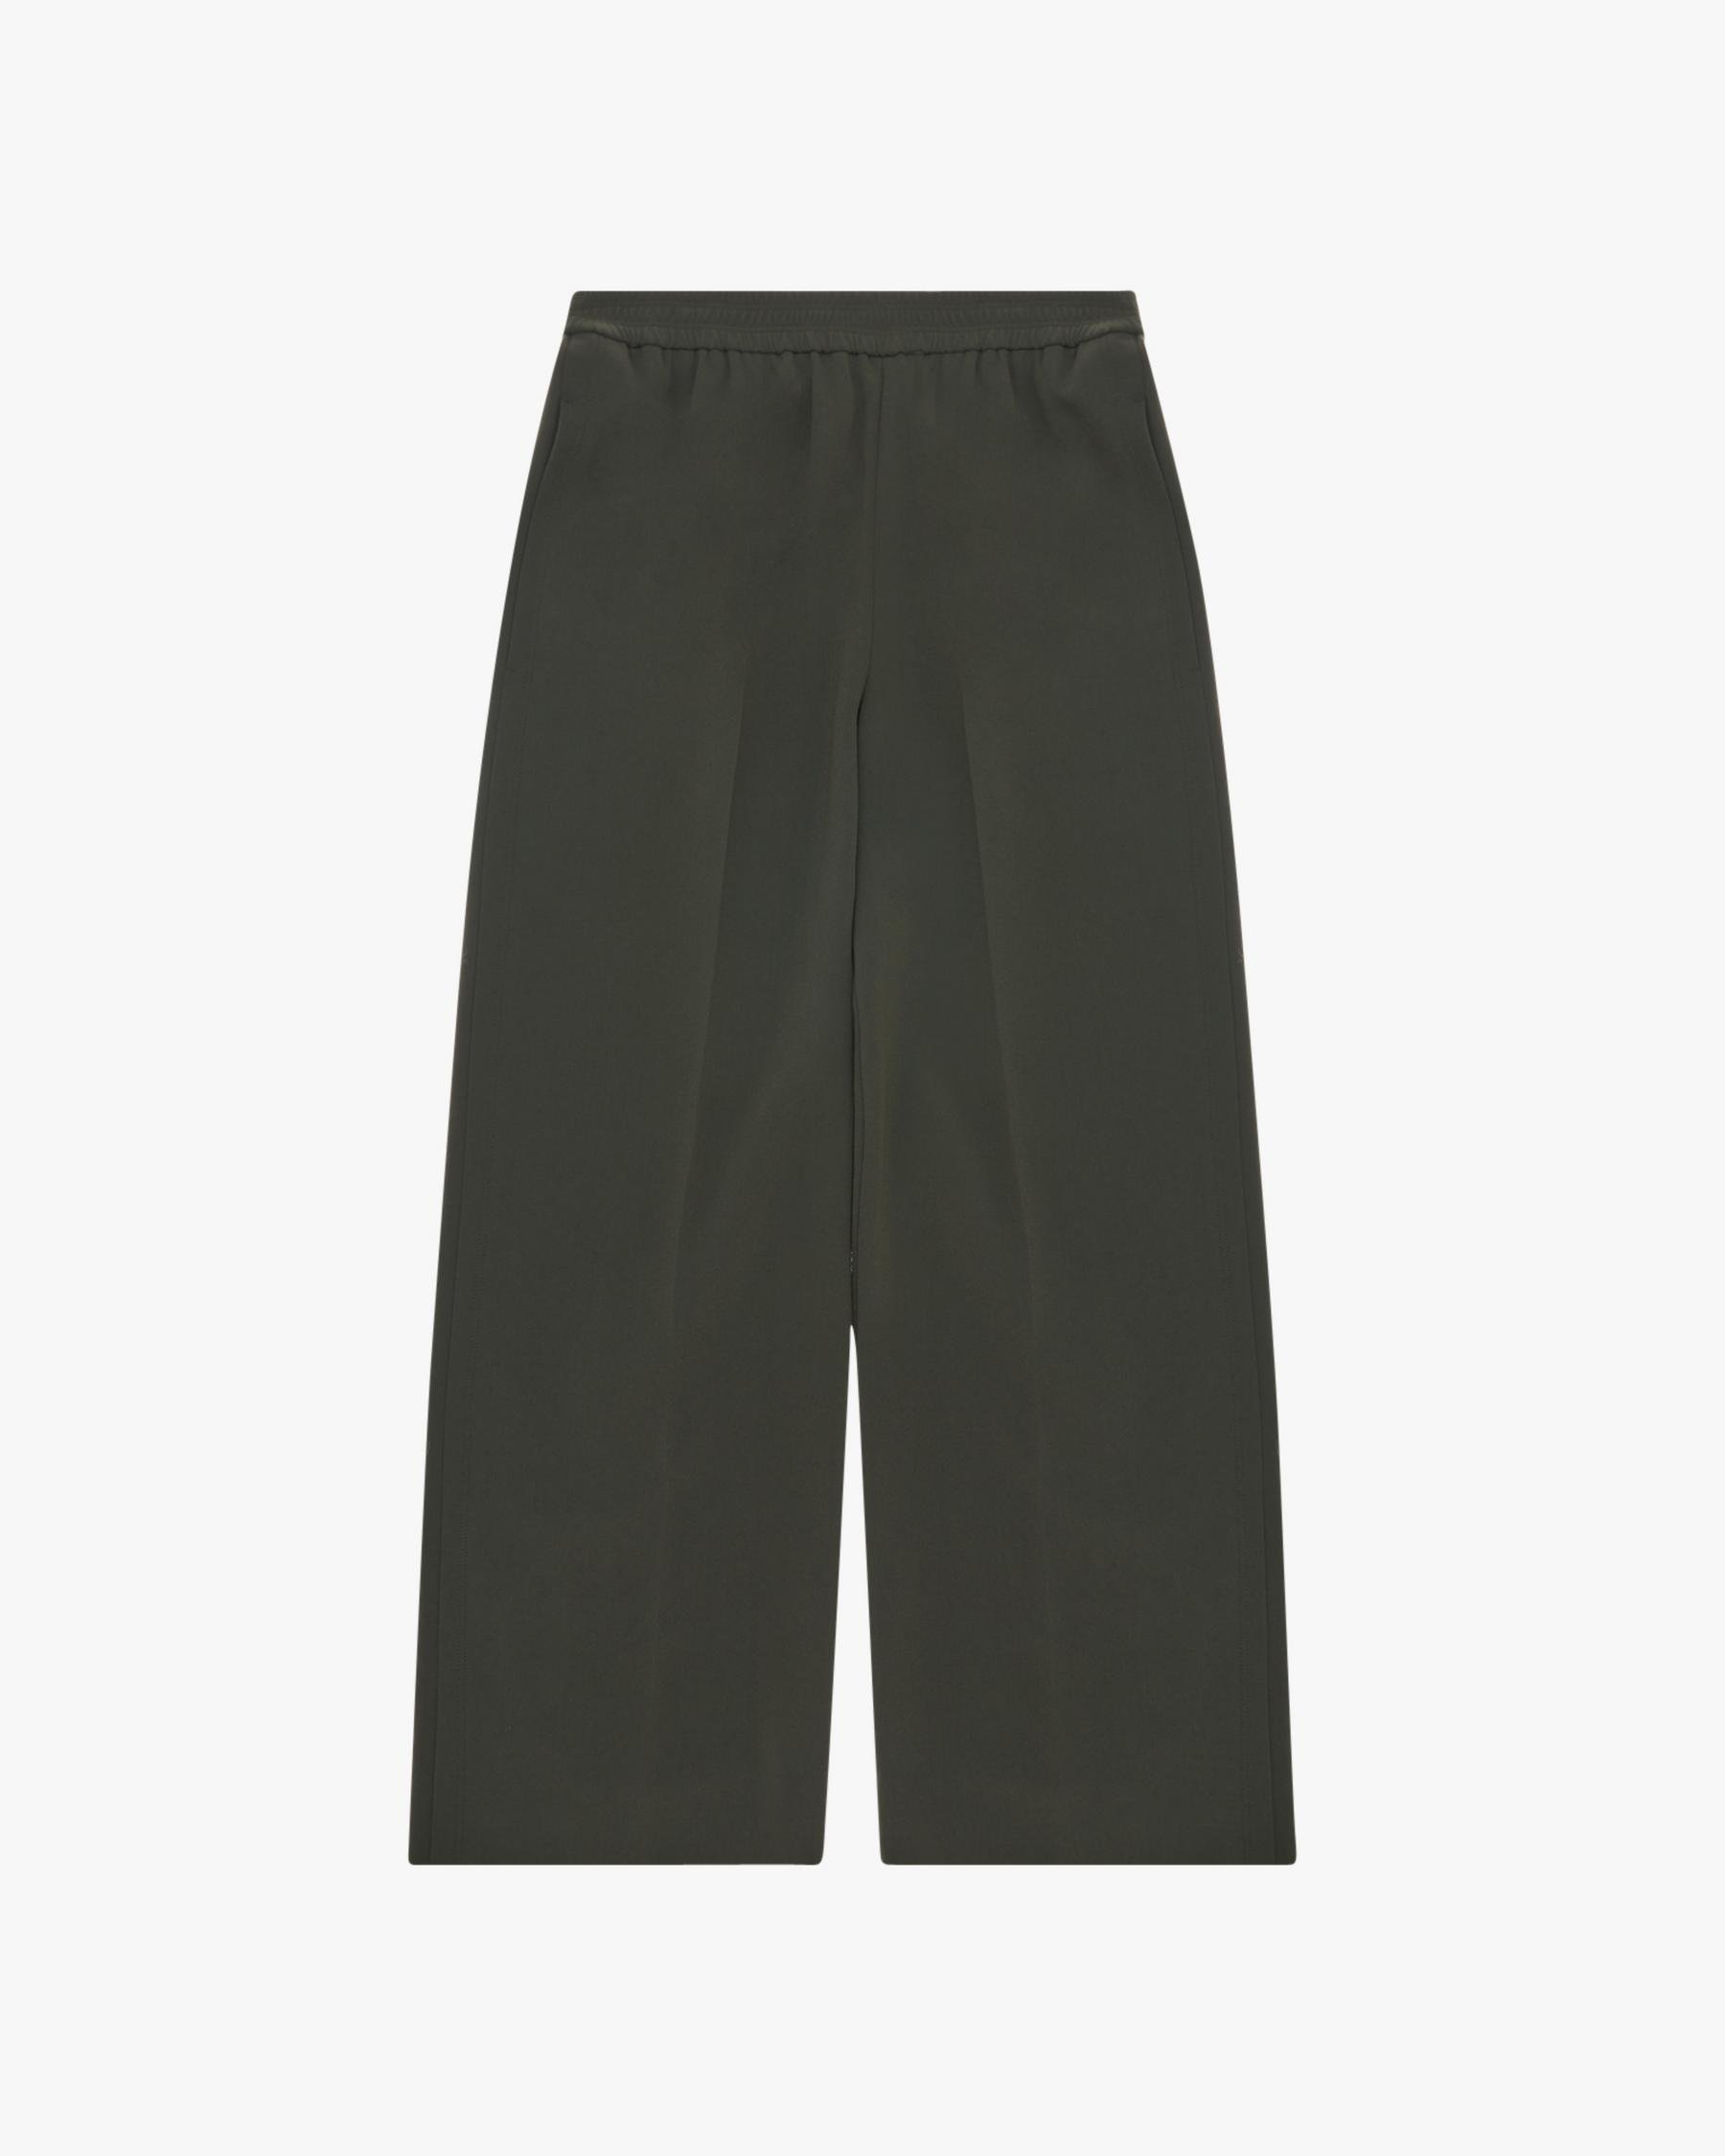 STRETCH PULL-ON PANT 4